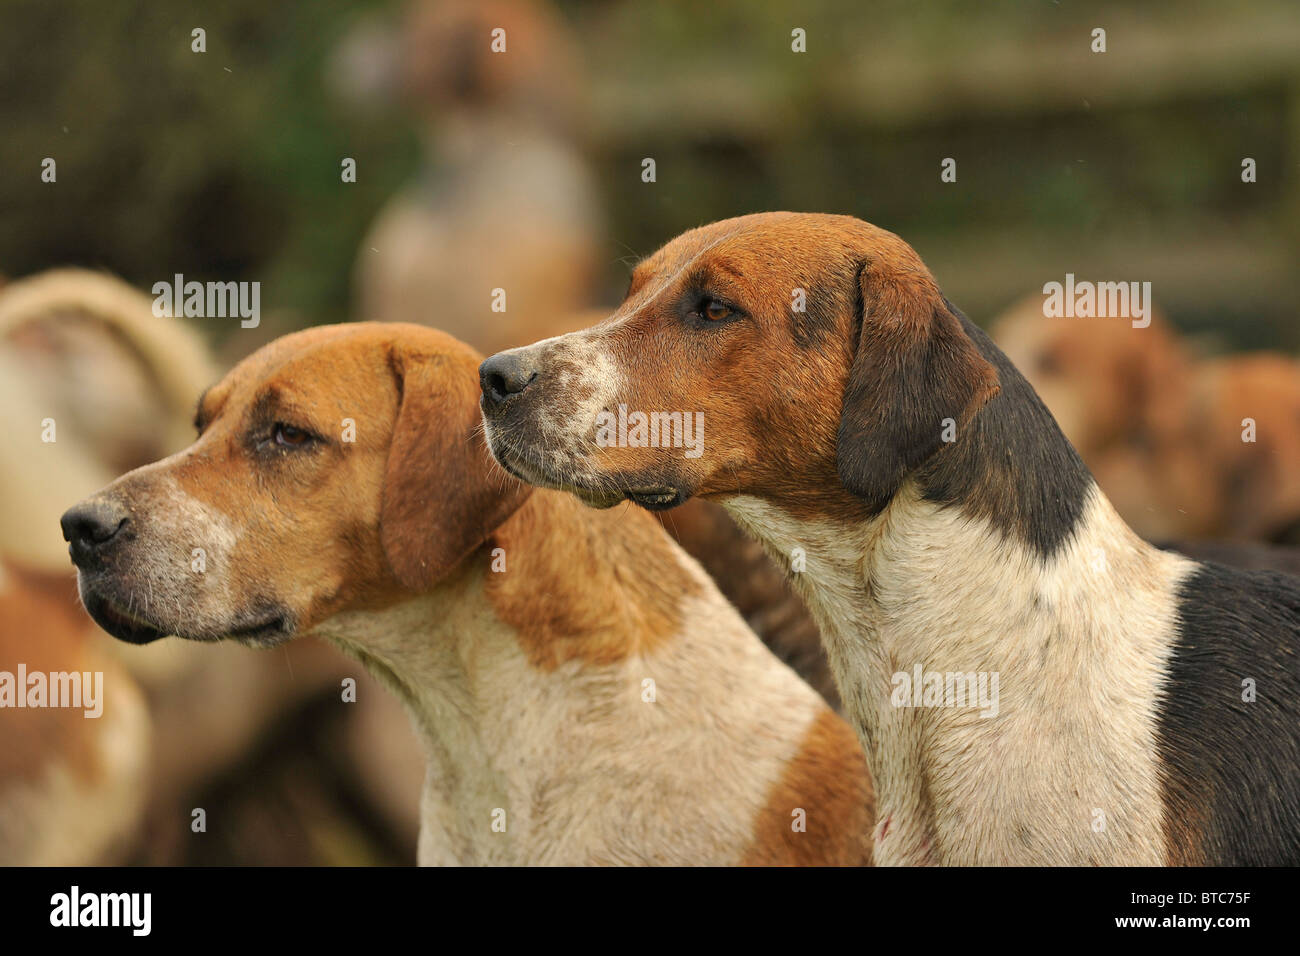 pack-of-english-foxhounds-BTC75F.jpg